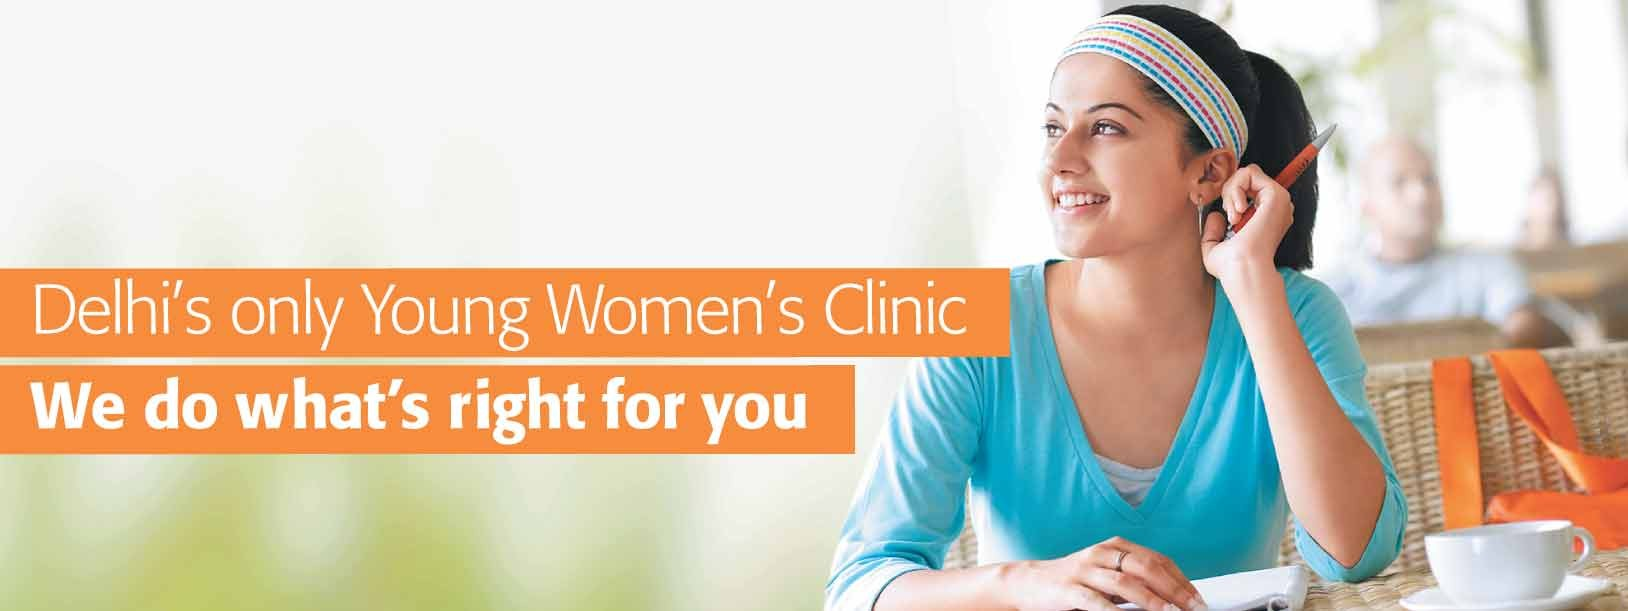 Delhi's only Young Women's Clinic